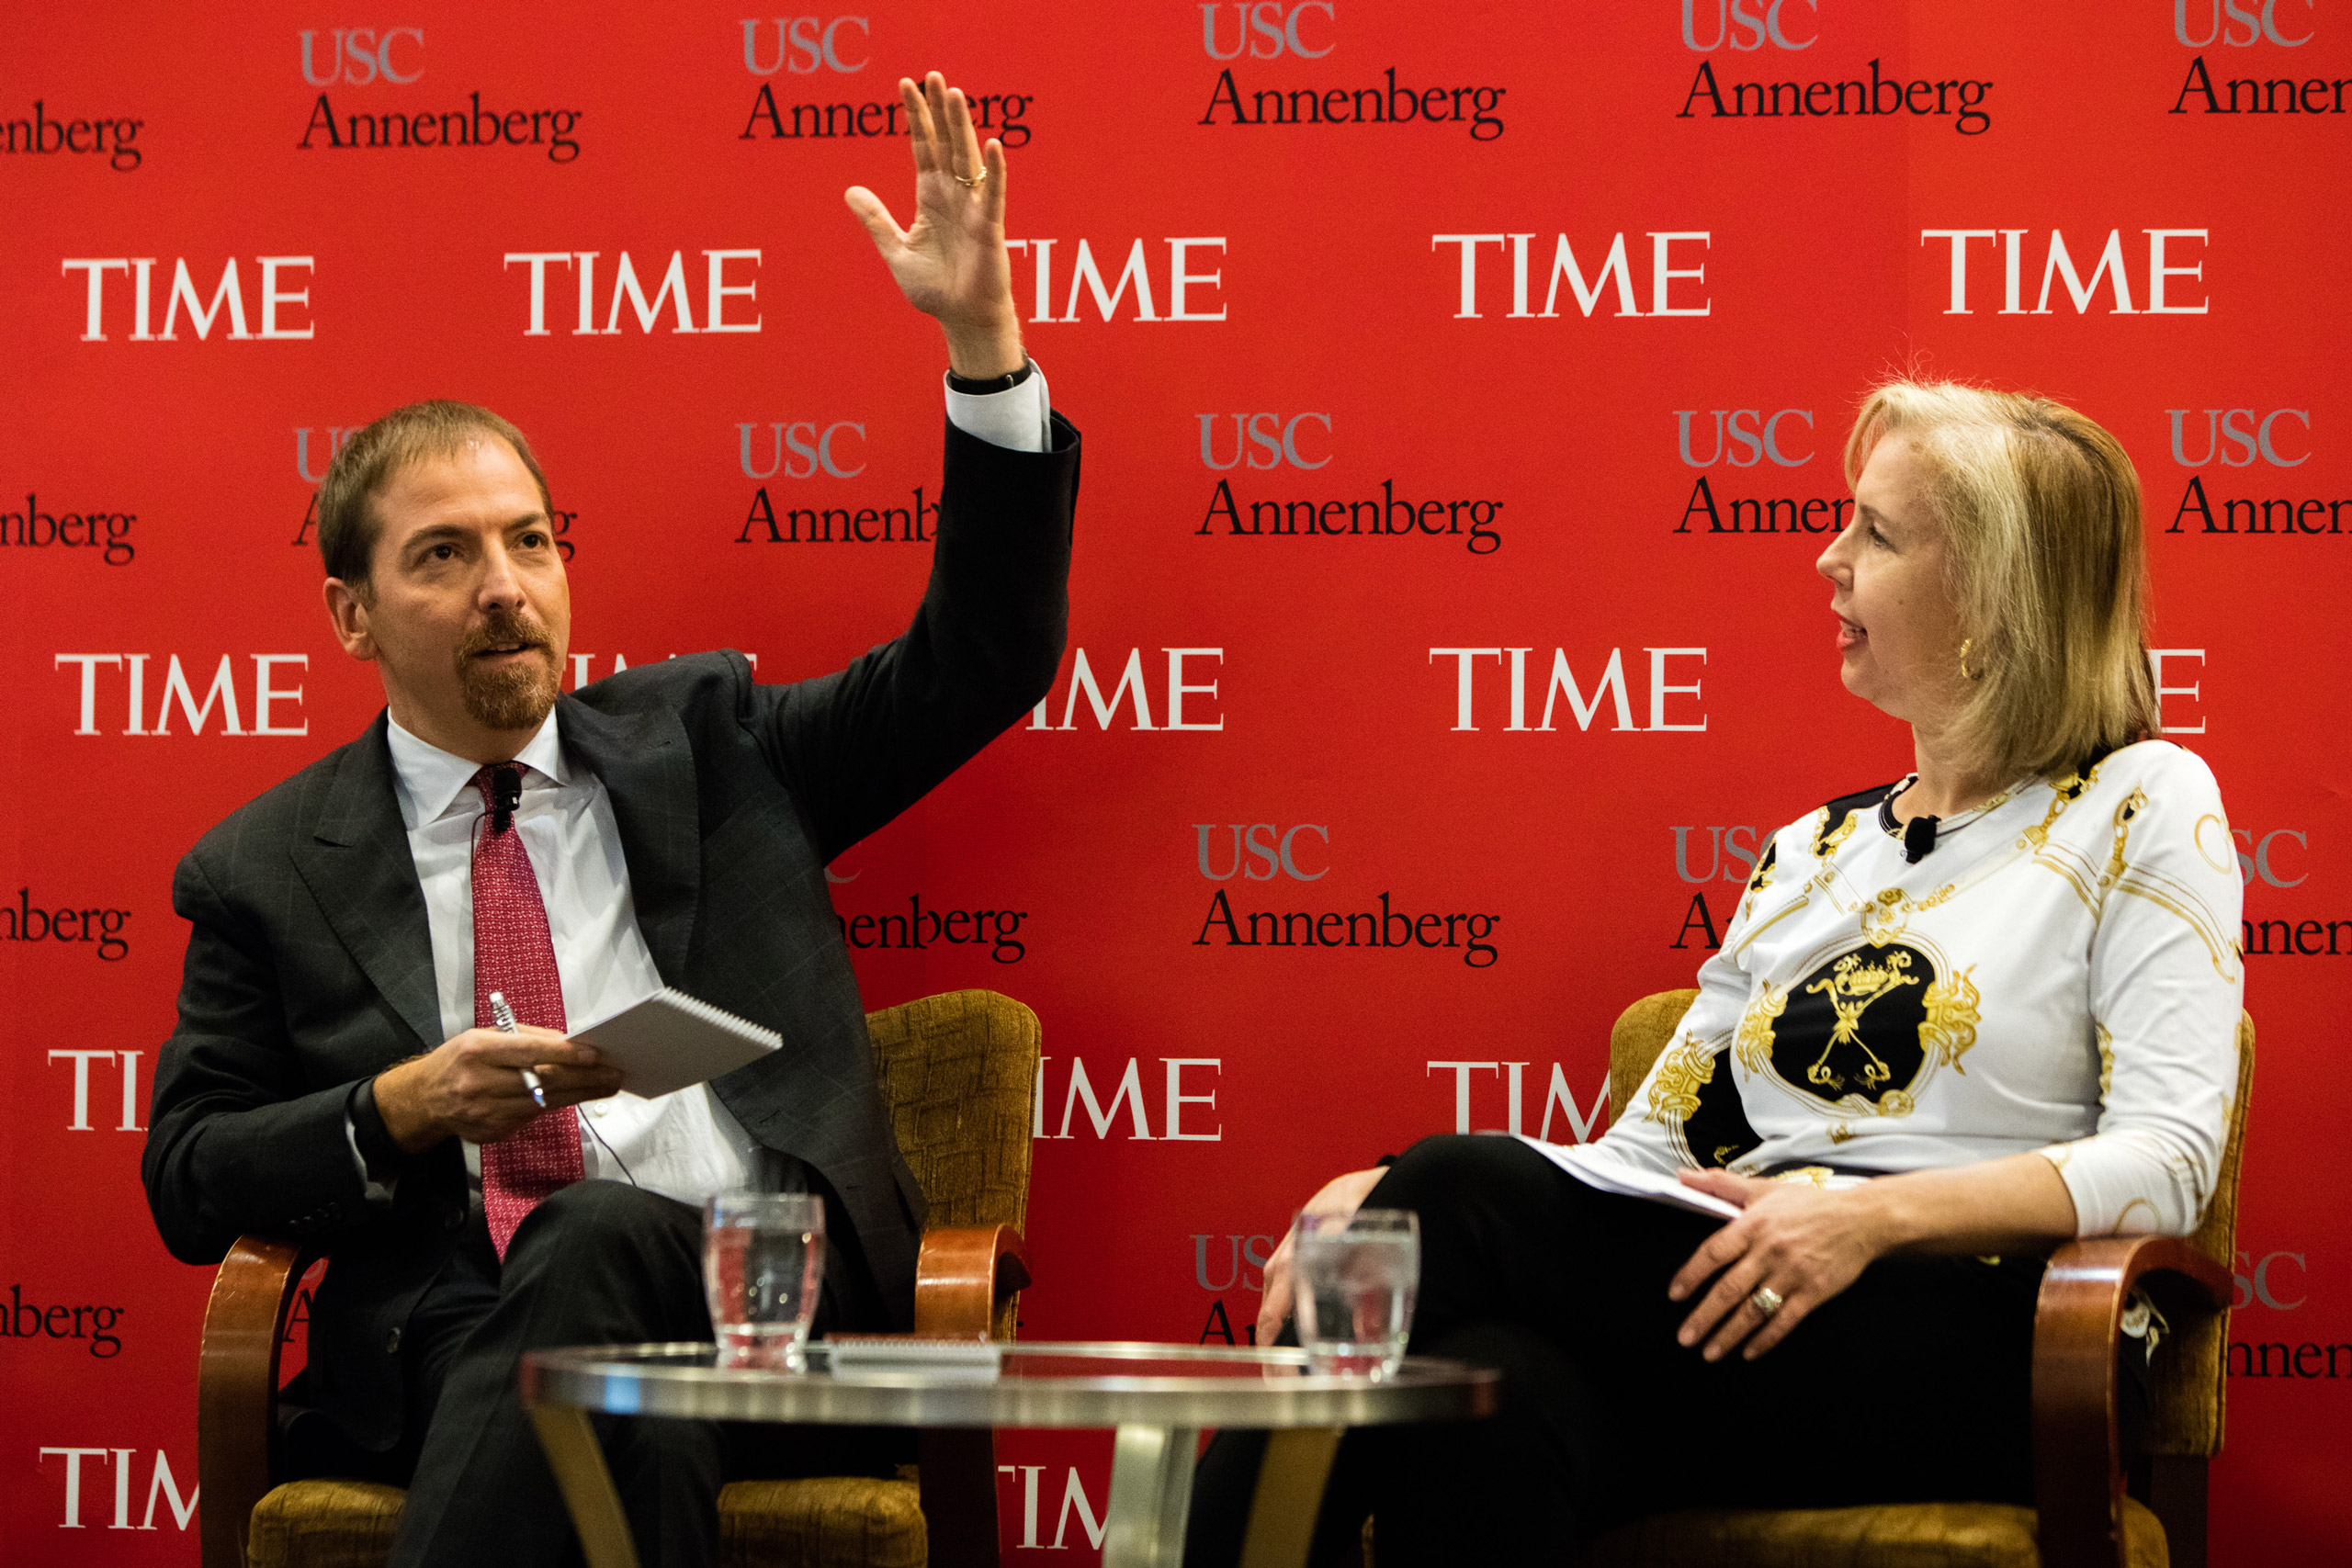 Chuck Todd and Nancy Gibbs at a panel hosted by USC Annenberg and TIME in Manchester, N.H., on Feb. 7, 2016.